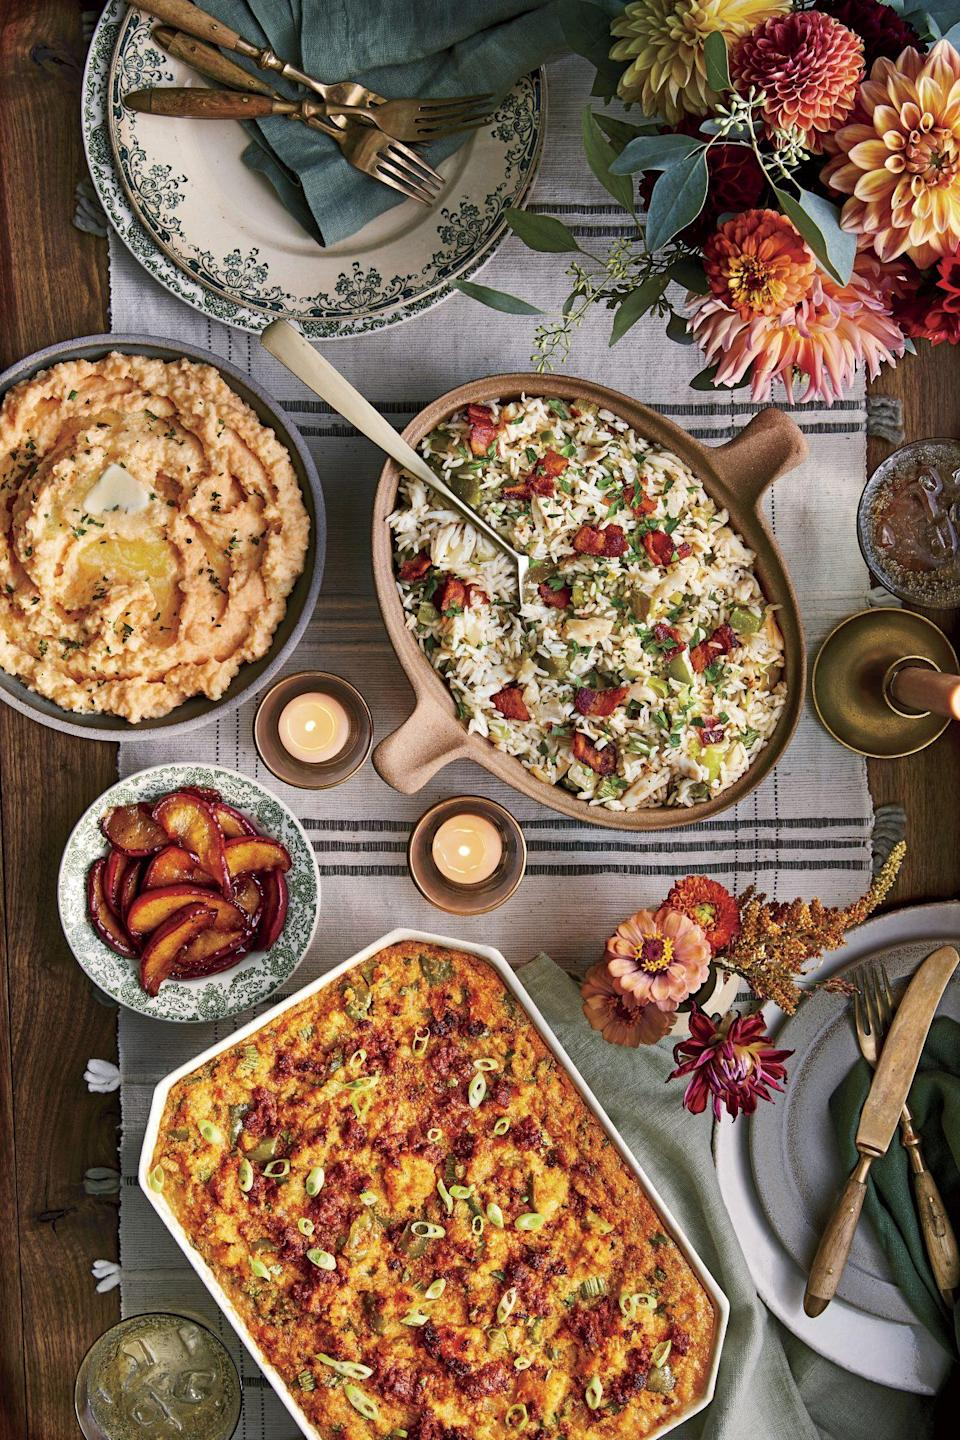 """<p><strong>Recipe: <a href=""""https://www.southernliving.com/recipes/spicy-cornbread-dressing-with-chorizo"""" rel=""""nofollow noopener"""" target=""""_blank"""" data-ylk=""""slk:Spicy Cornbread Dressing with Chorizo"""" class=""""link rapid-noclick-resp"""">Spicy Cornbread Dressing with Chorizo</a></strong></p> <p>Spice up the seasonal menu with this sassy take on classic cornbread dressing that is flavored with jalapenos, chorizo, and cilantro.</p>"""